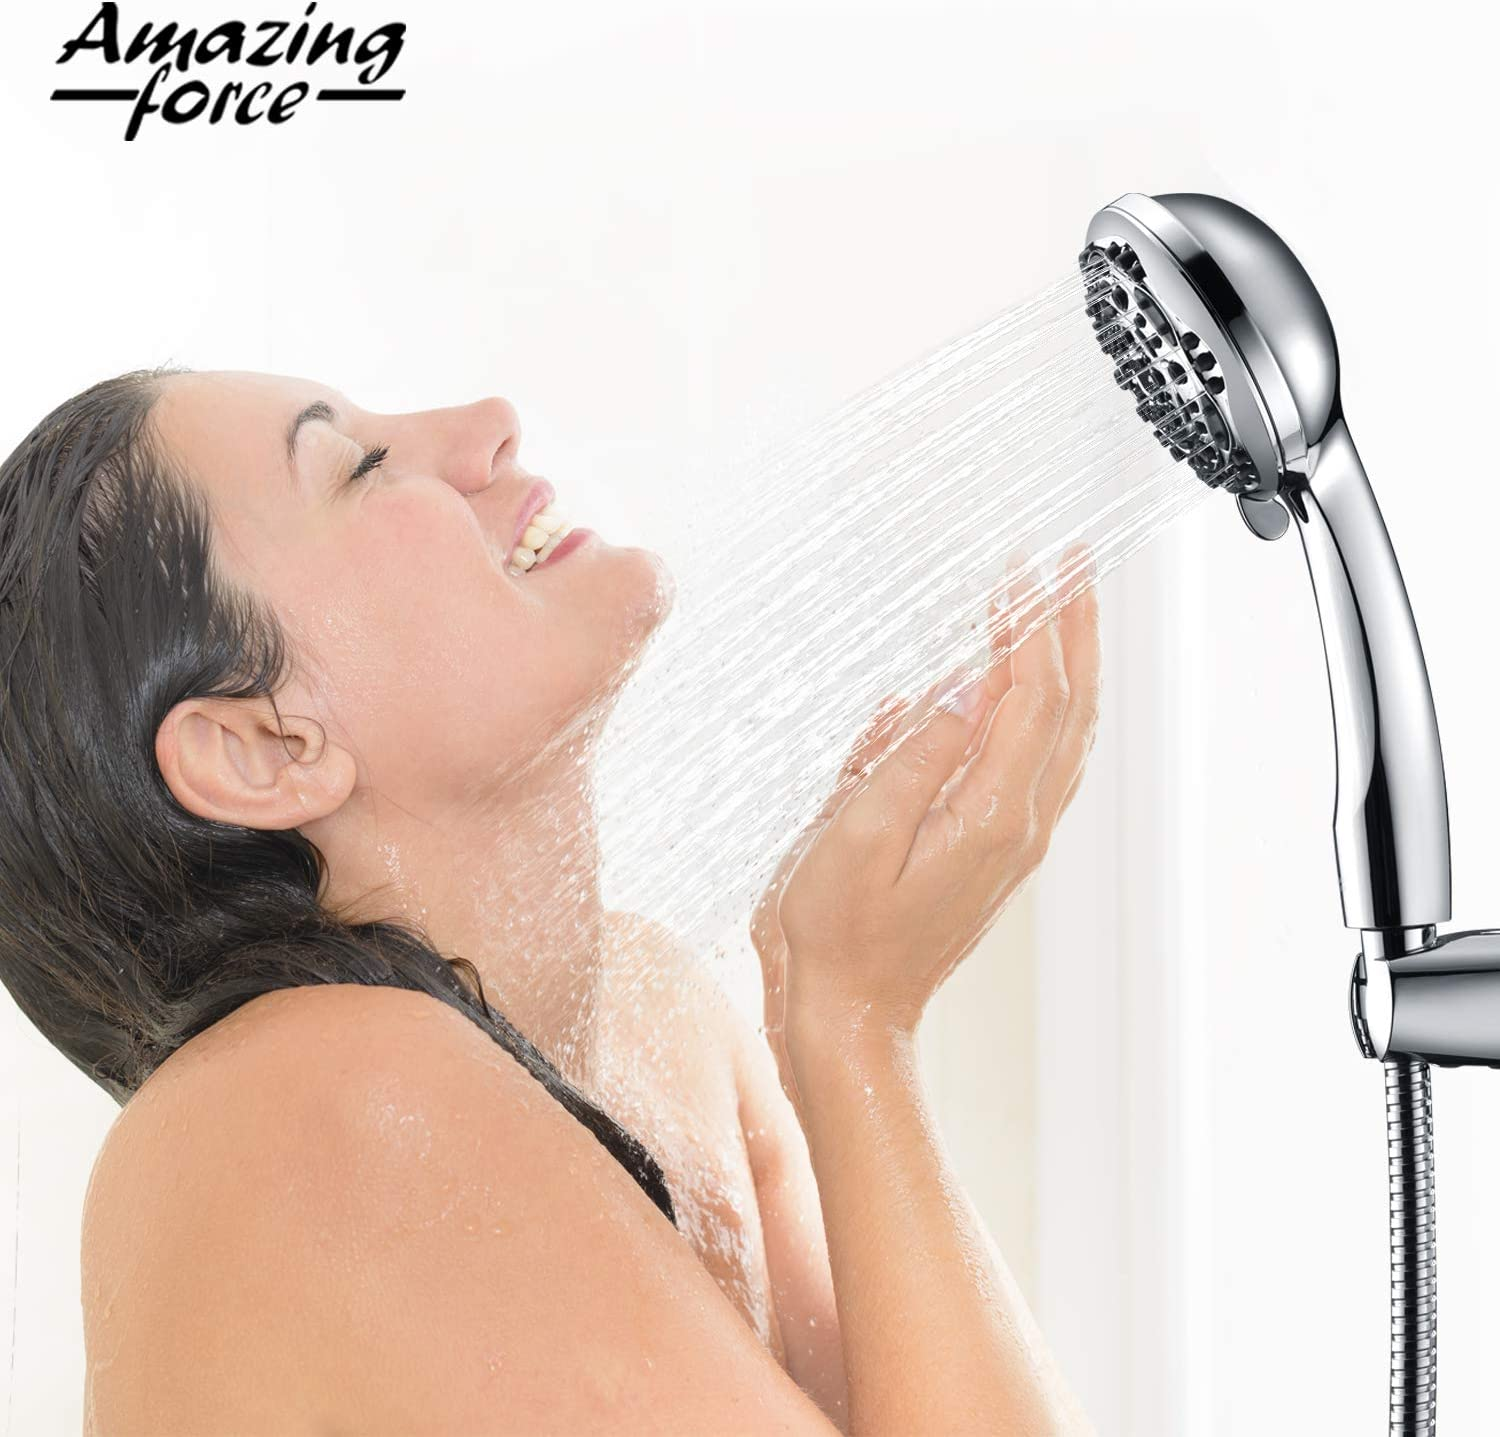 6 feet Amazing Force High Pressure Handheld Shower Head with 7 Spray Setting Massage Spa Showerhead with Adjustable Suction Cup and Bracket 4 Handheld Shower Heads with Extra Long Hose 71 inch Black